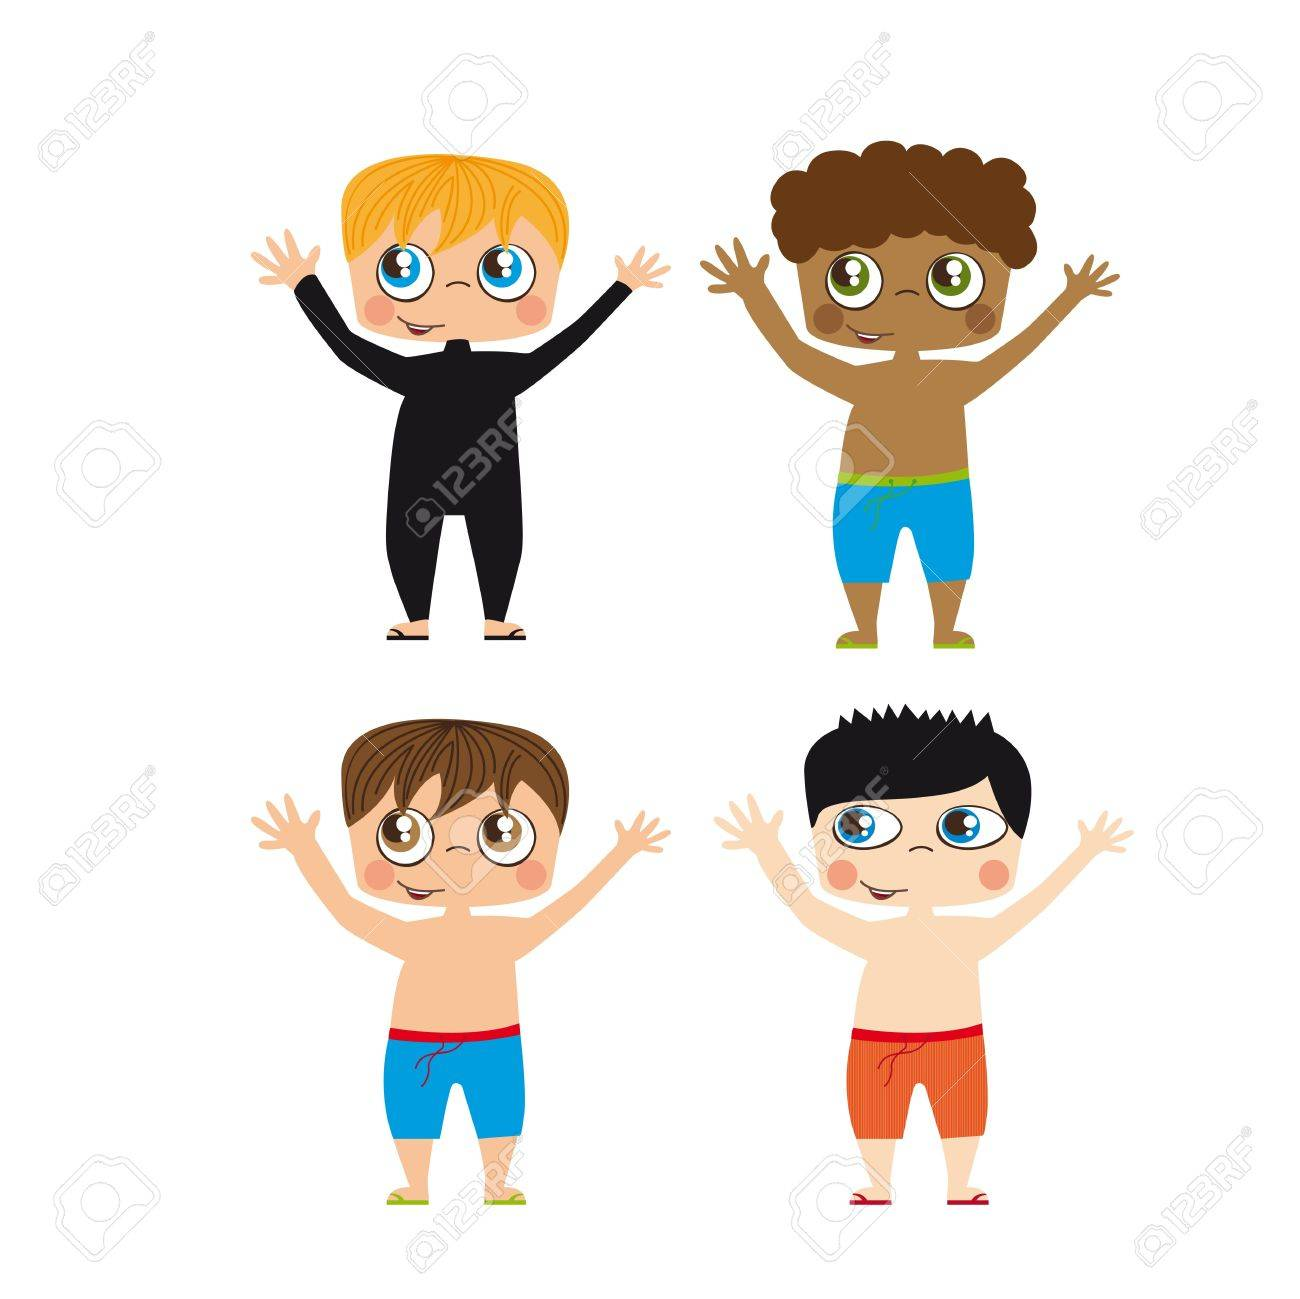 Boys Draw On White Background Illustration Royalty Free Cliparts